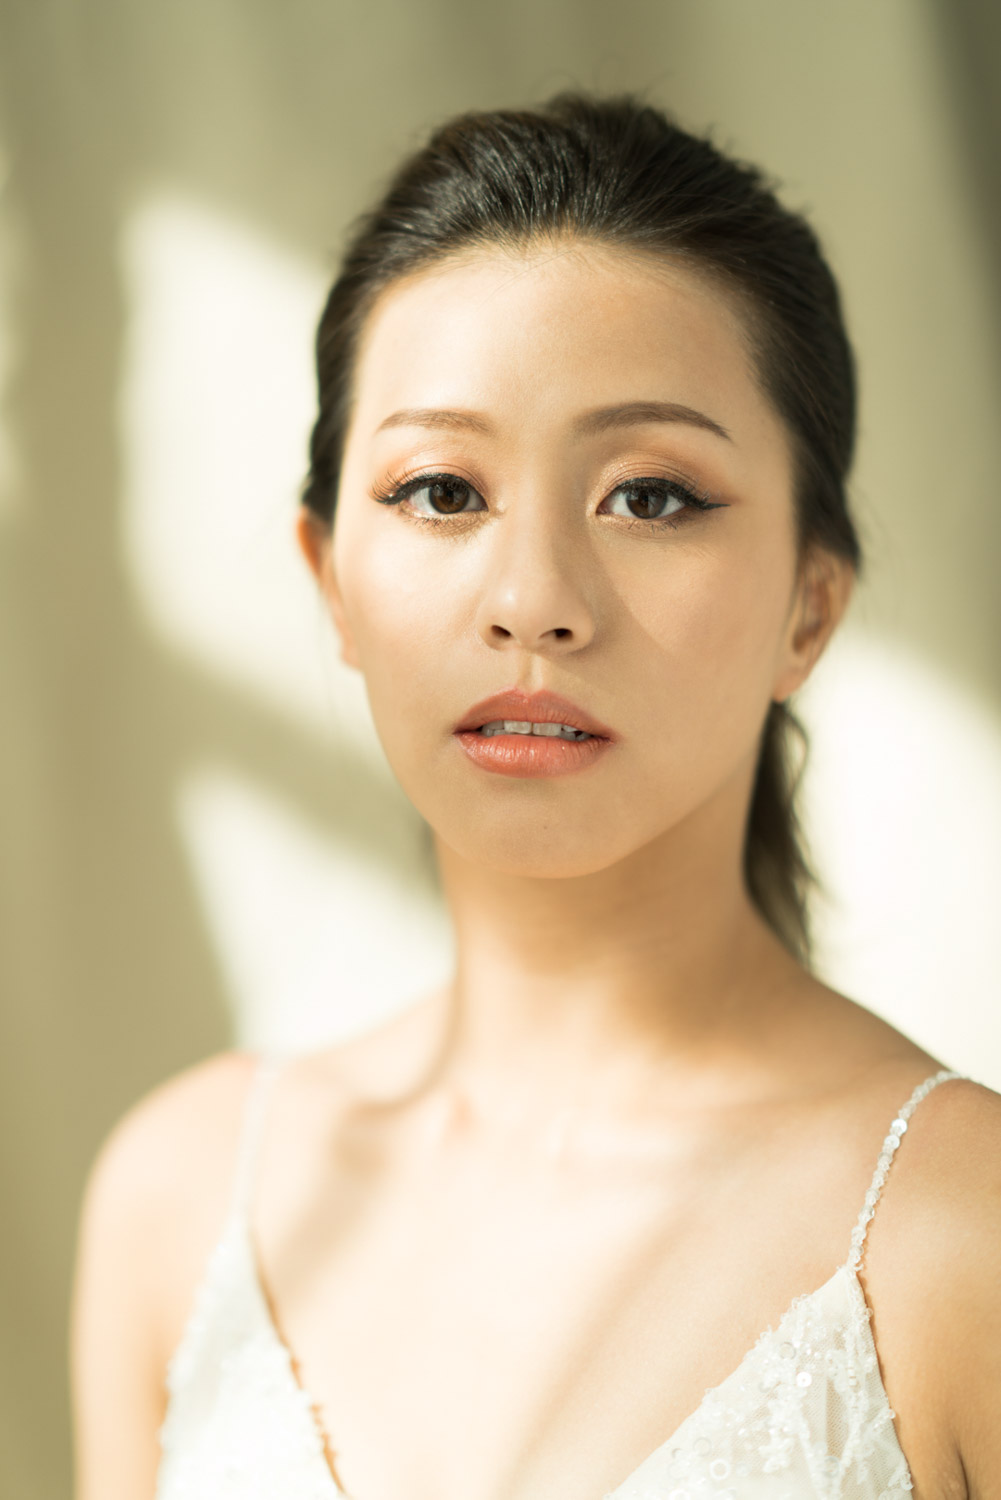 hong kong woman portrait photography kay lai studio